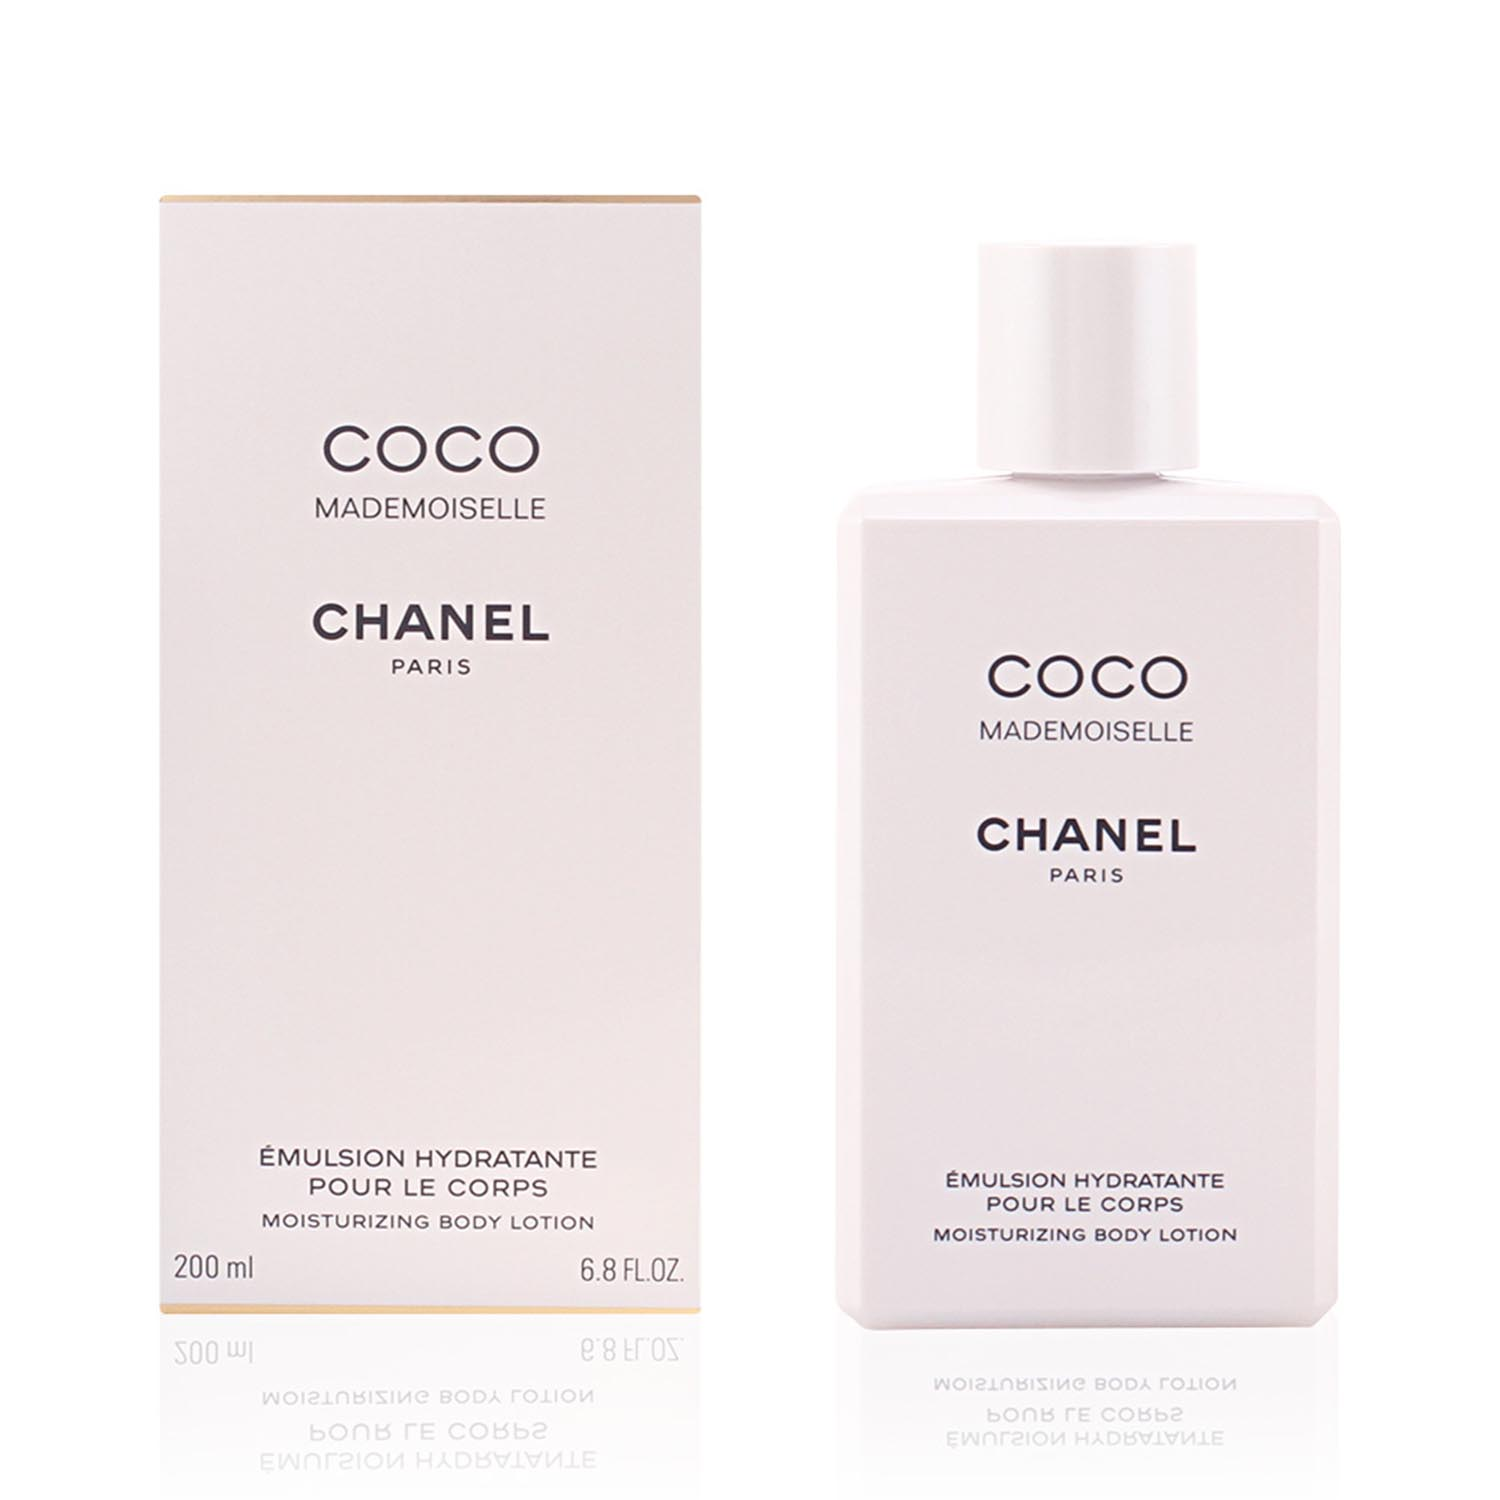 Chanel coco mademoiselle body milk 200ml